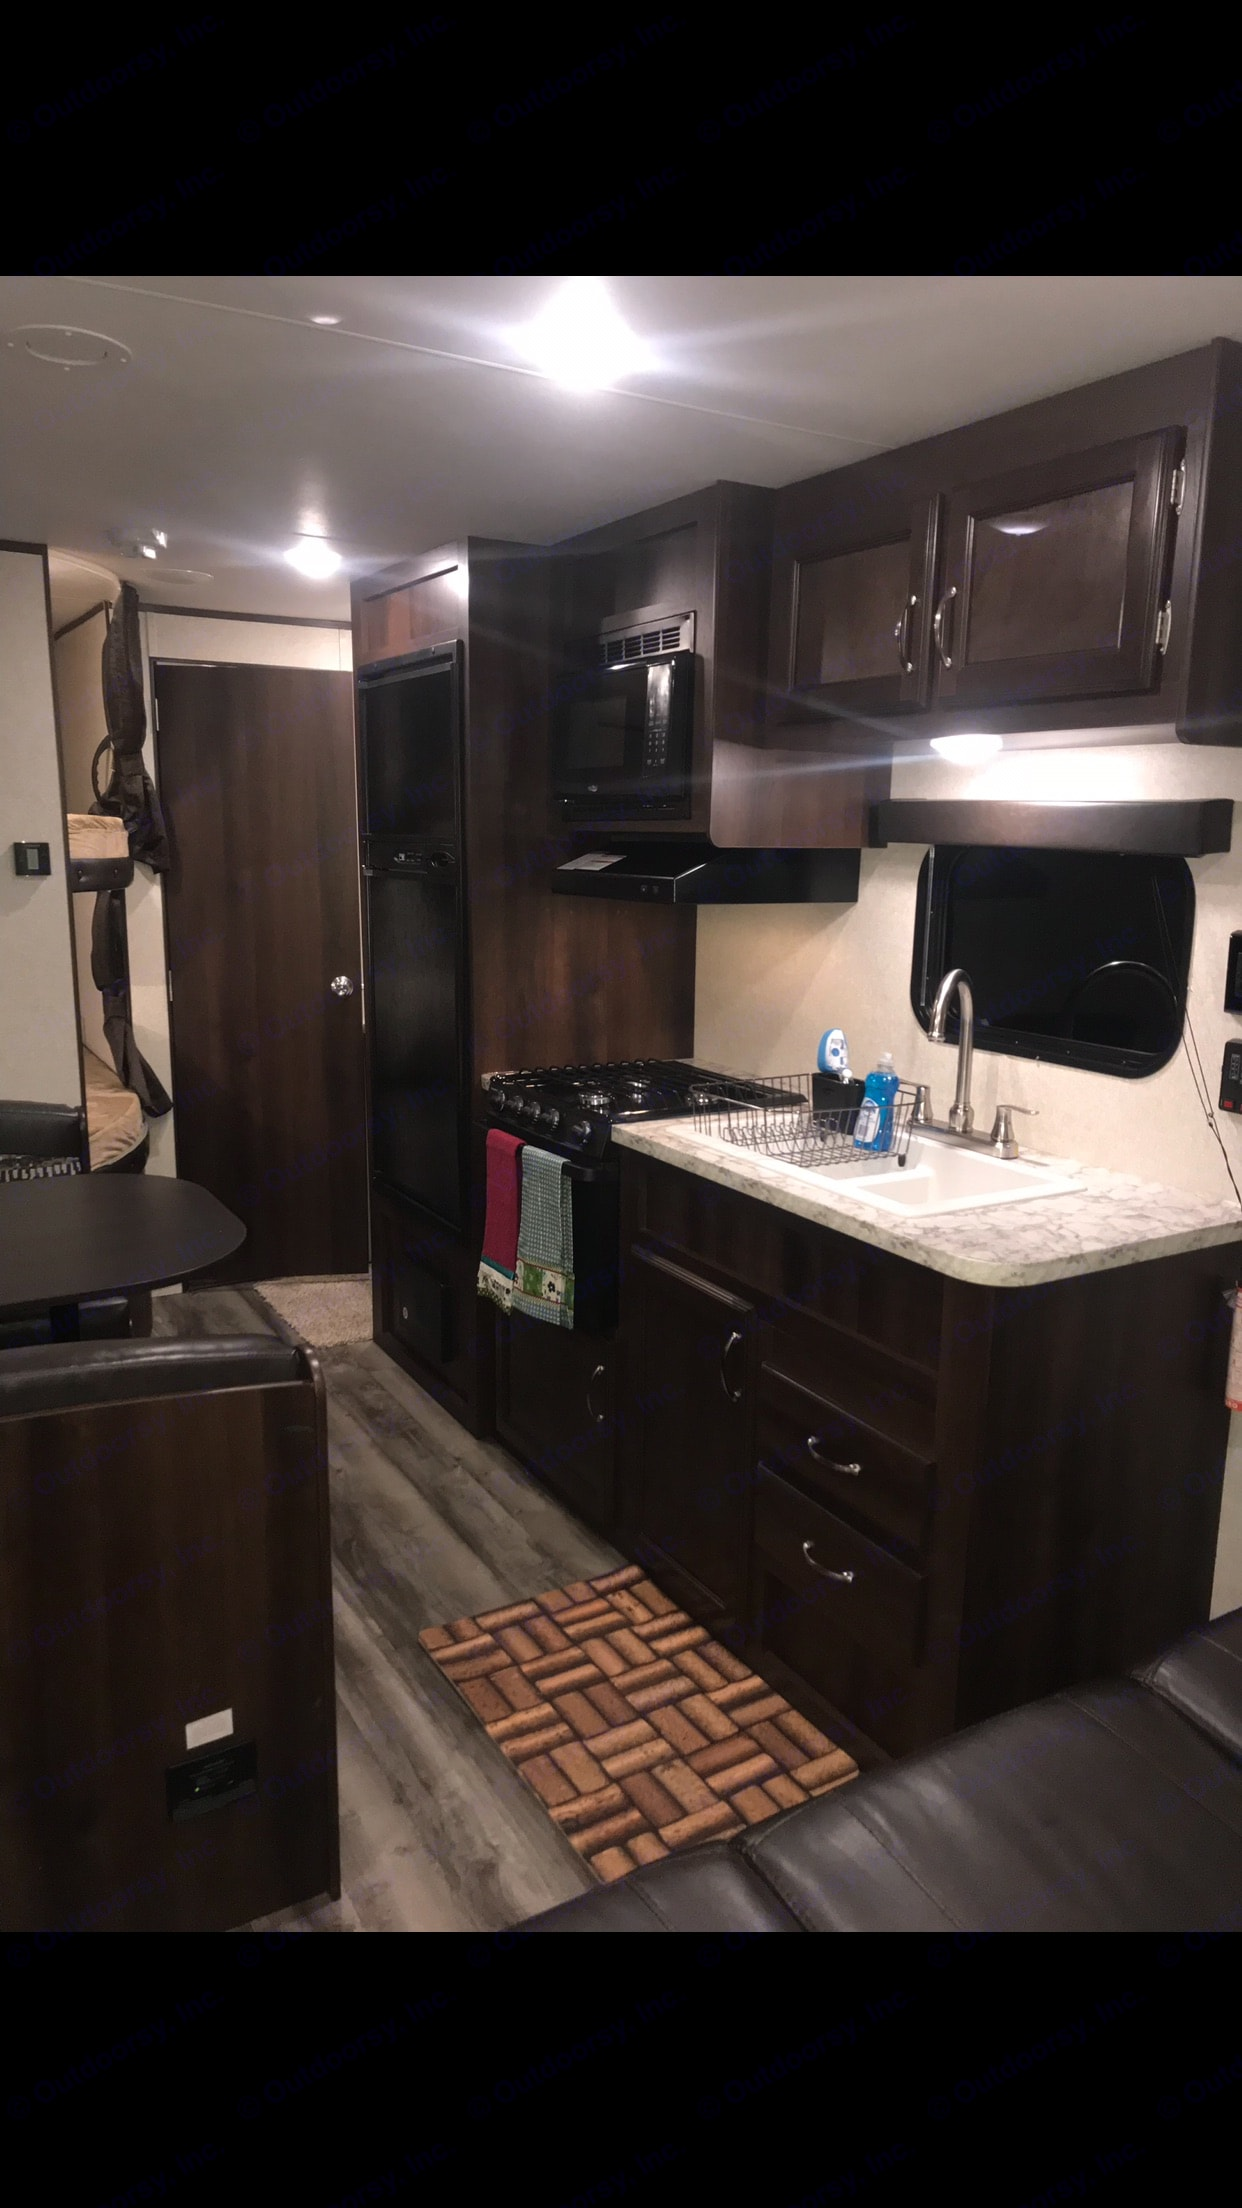 Kitchen Area with Large Fridge / Freezer, 3 Burner Stove, Microwave, Dual Sinks for Easy Clean Up & Small Oven for Rainy Days . Jayco Jay Flight 2018